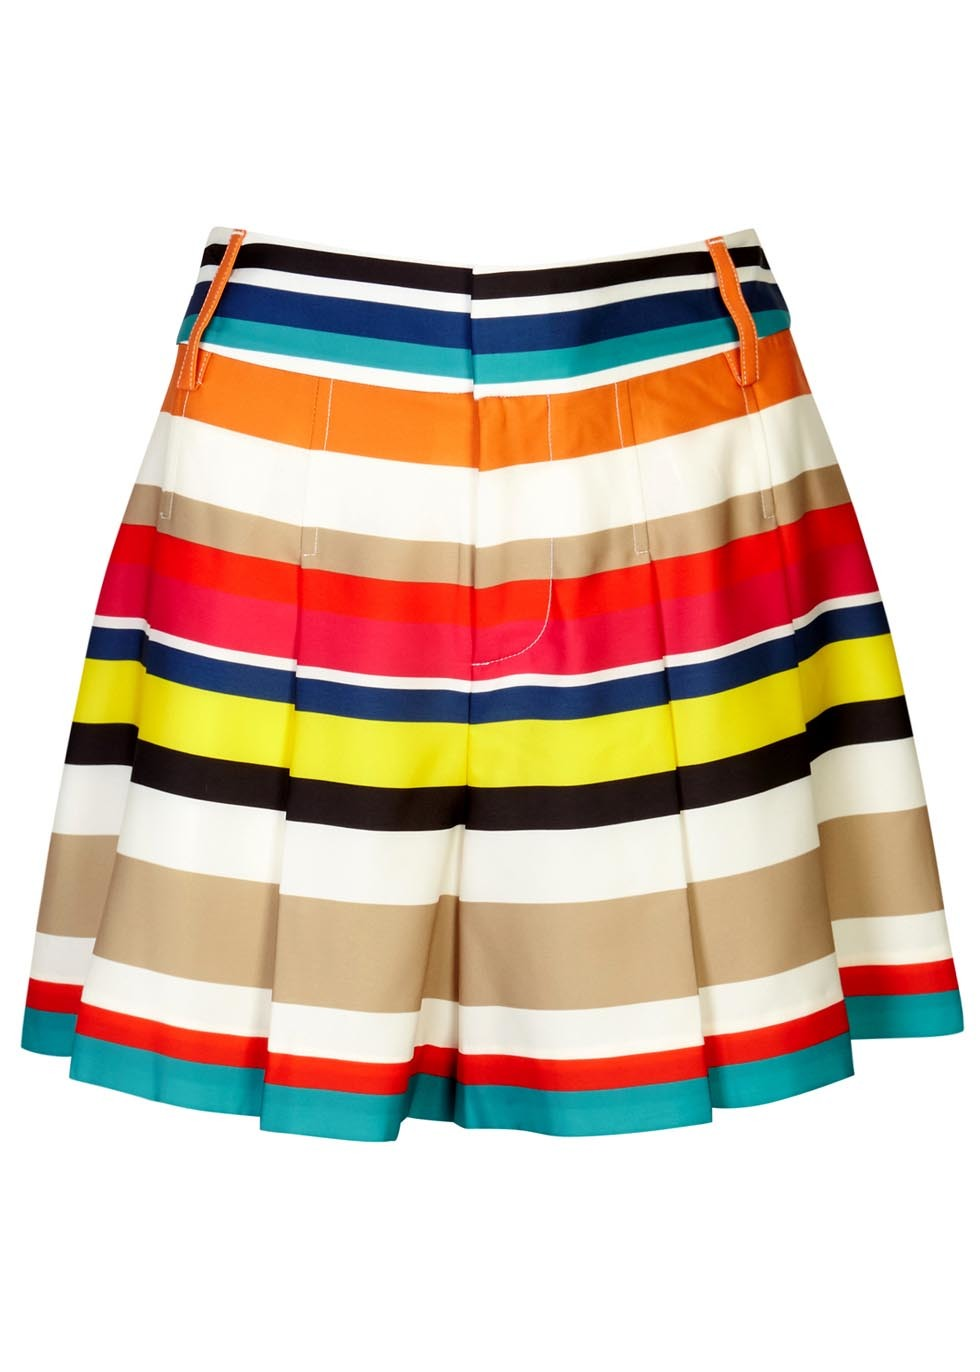 Scarlet Striped Satin Shorts - pattern: striped; waist: high rise; predominant colour: yellow; secondary colour: stone; occasions: casual; fibres: polyester/polyamide - stretch; texture group: structured shiny - satin/tafetta/silk etc.; pattern type: fabric; pattern size: light/subtle (bottom); multicoloured: multicoloured; season: s/s 2016; style: culotte; length: mid thigh shorts; fit: a-line; wardrobe: highlight